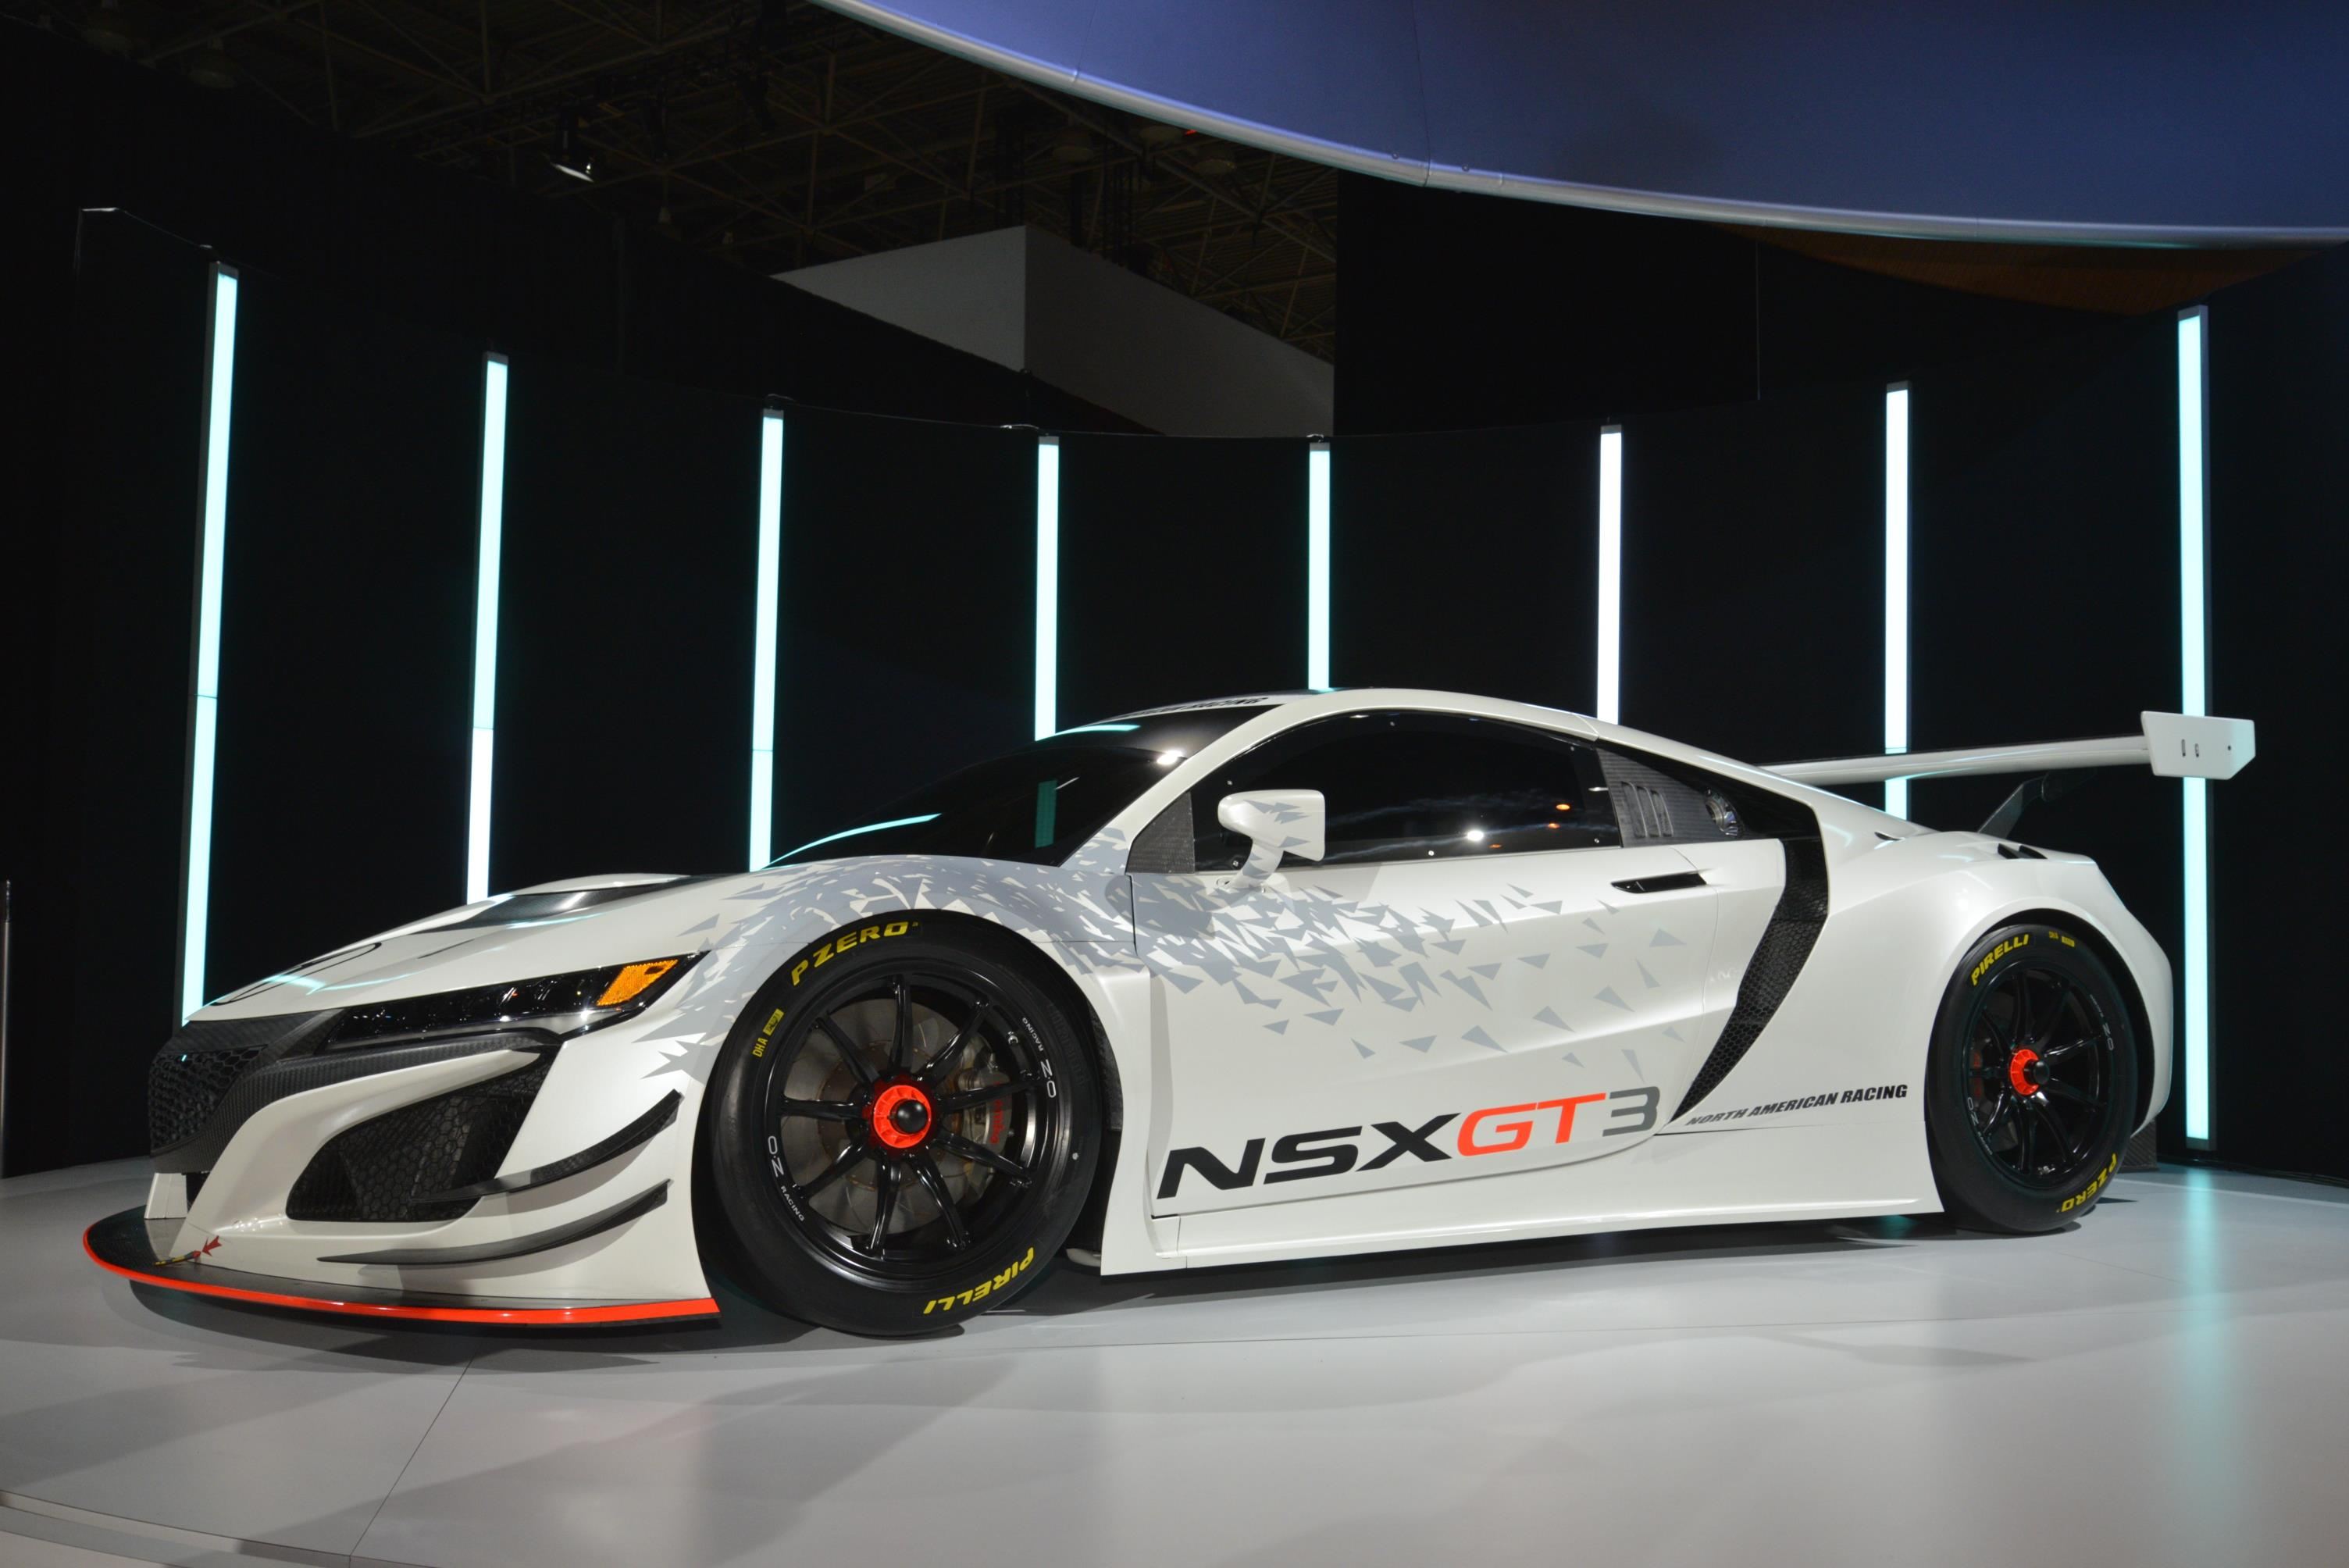 2018 Honda NSX GT3 Is One Expensive Way To Go Customer Racing - autoevolution